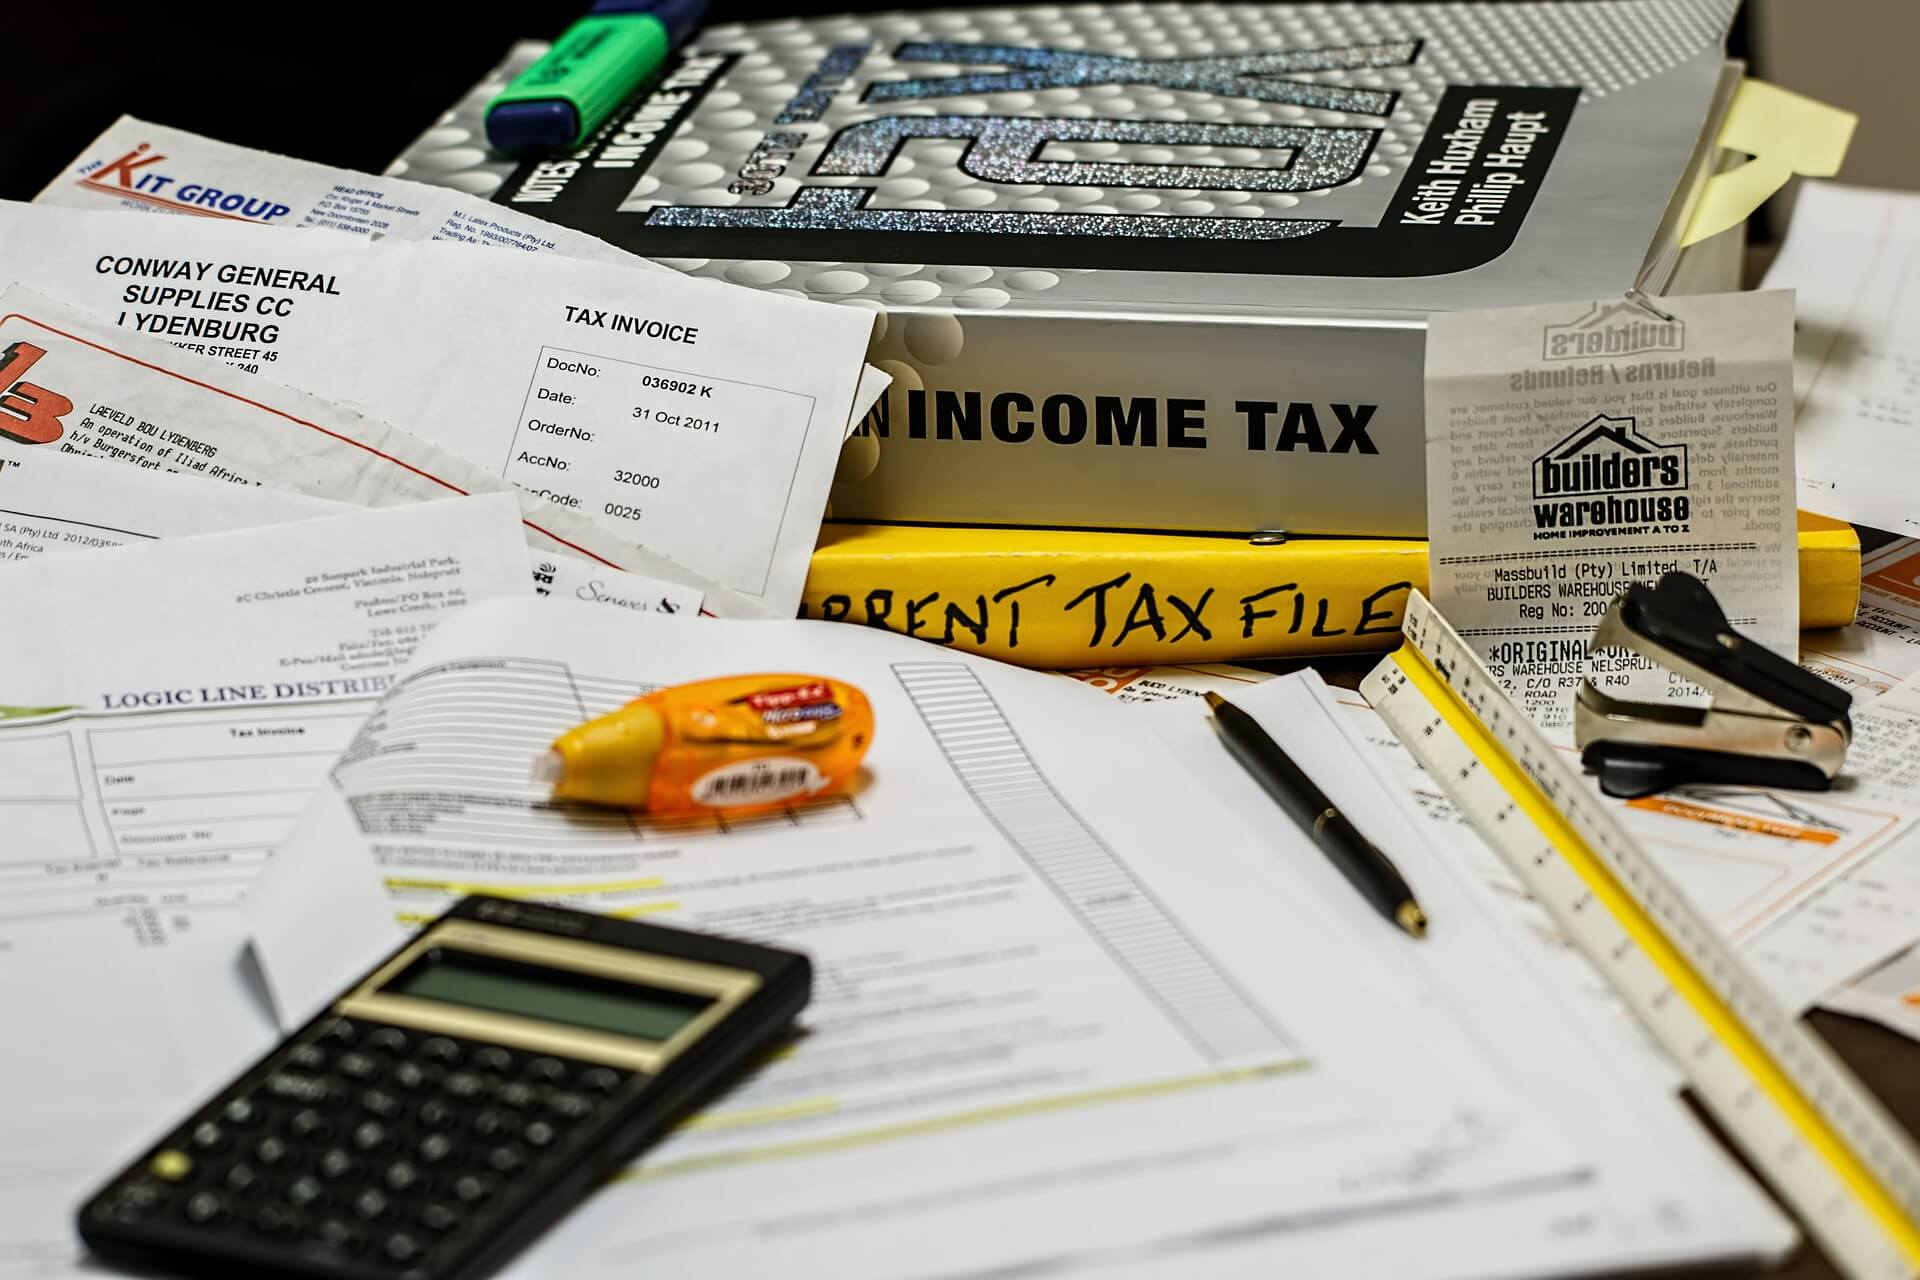 Image of papers, calculators, and books on taxes.